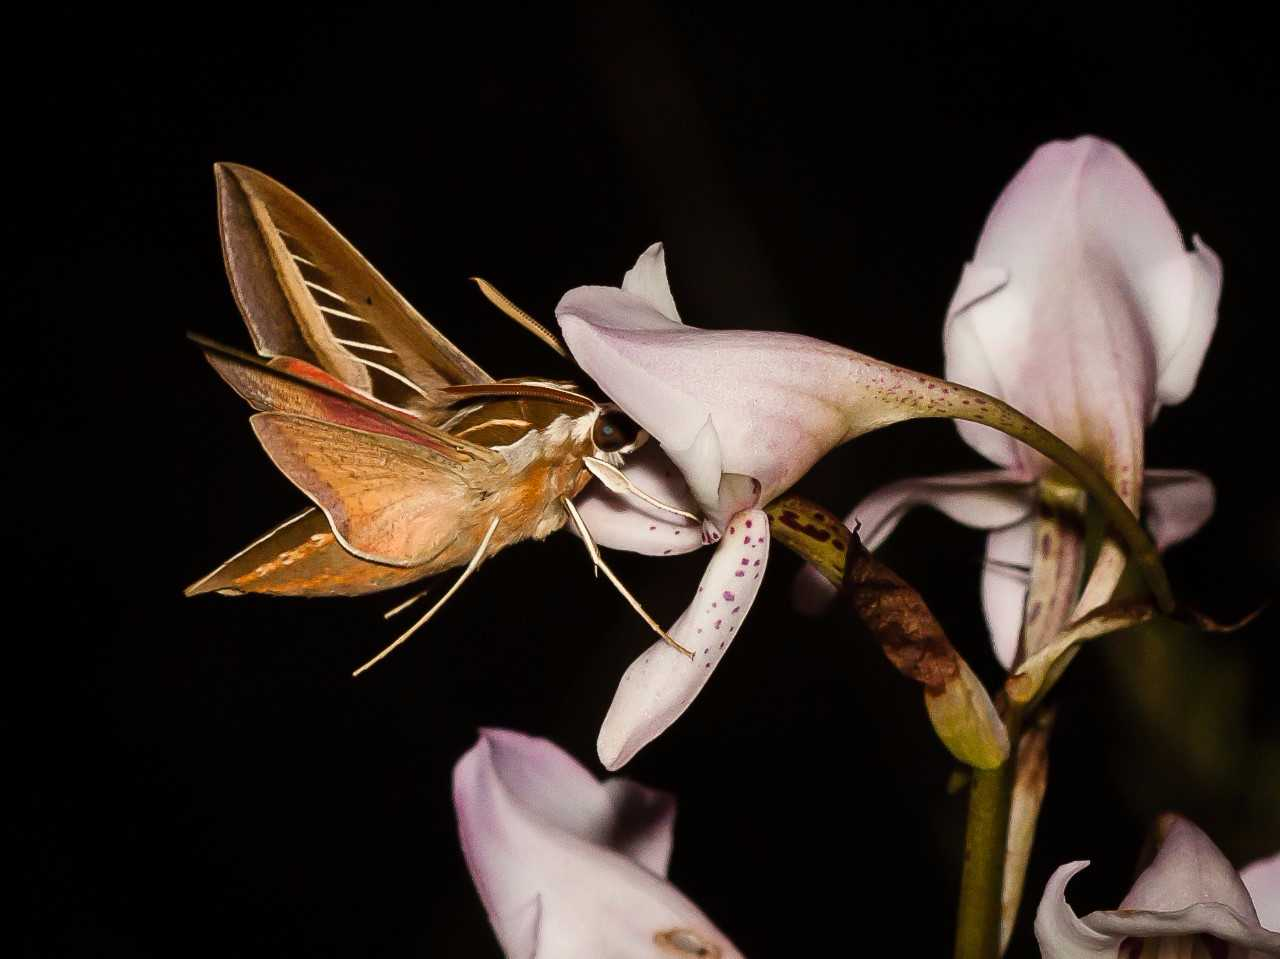 The hawkmoth Basiothia schenki visiting a flower of the orchid Disa crassicorni at dusk in the Drakensberg Mountains. Free State, South Africa. Photo credit: Michael R. Whitehead